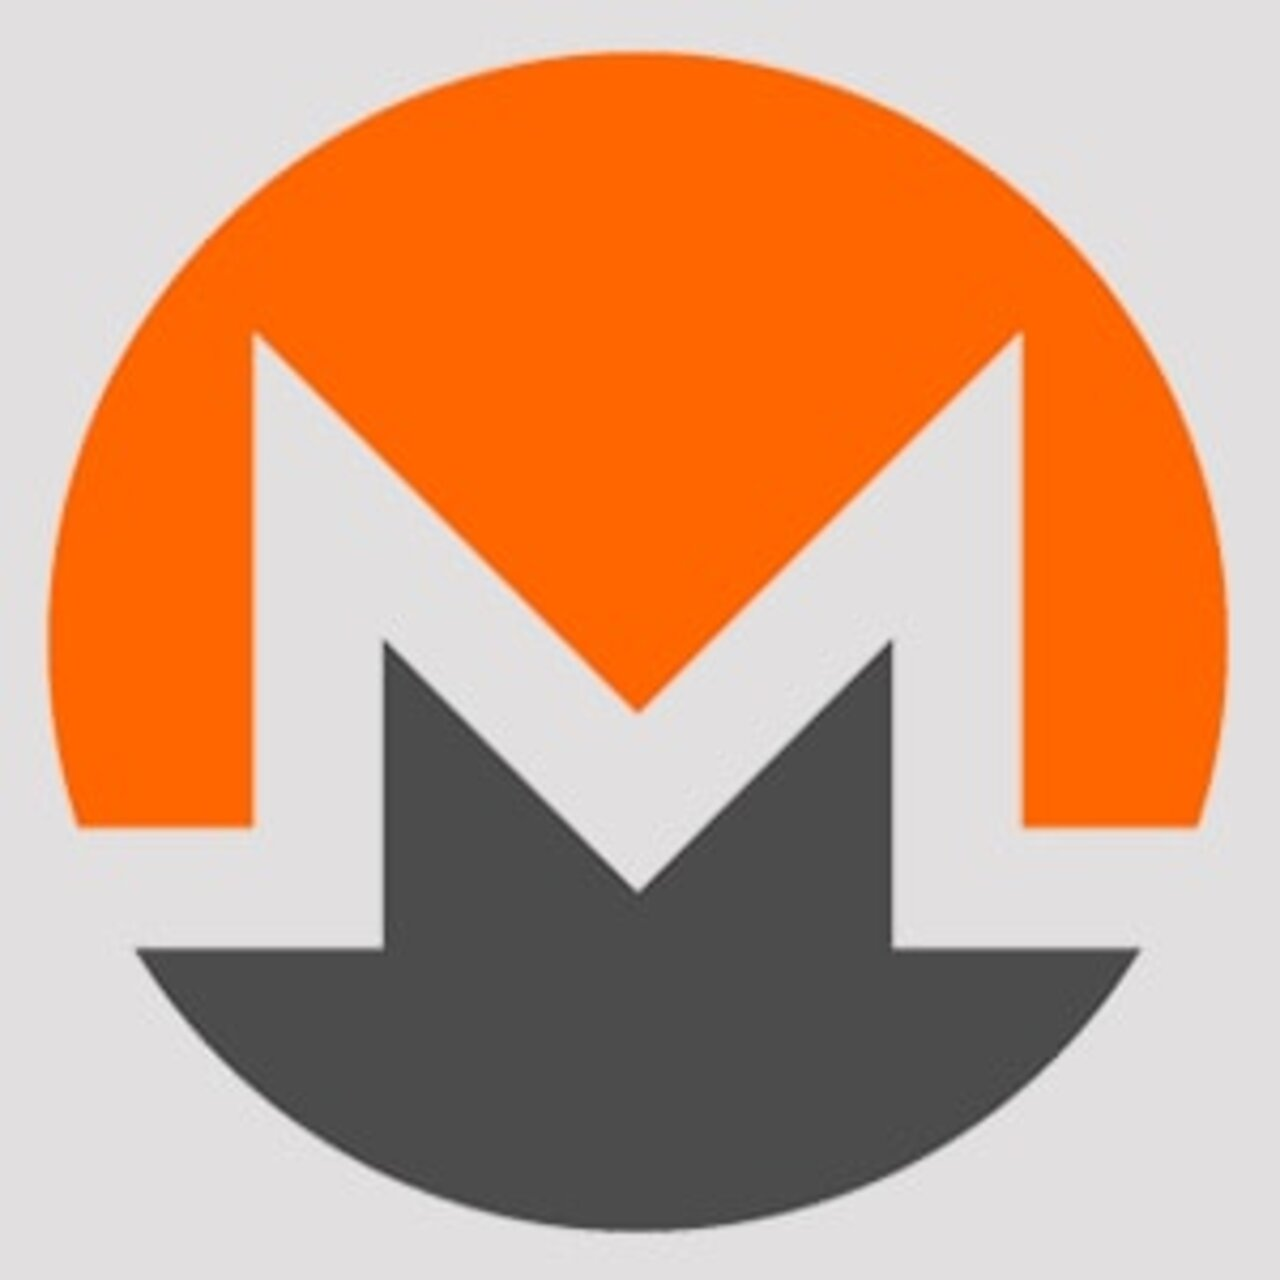 XMR/USD ignores the hard fork activated on Monero network